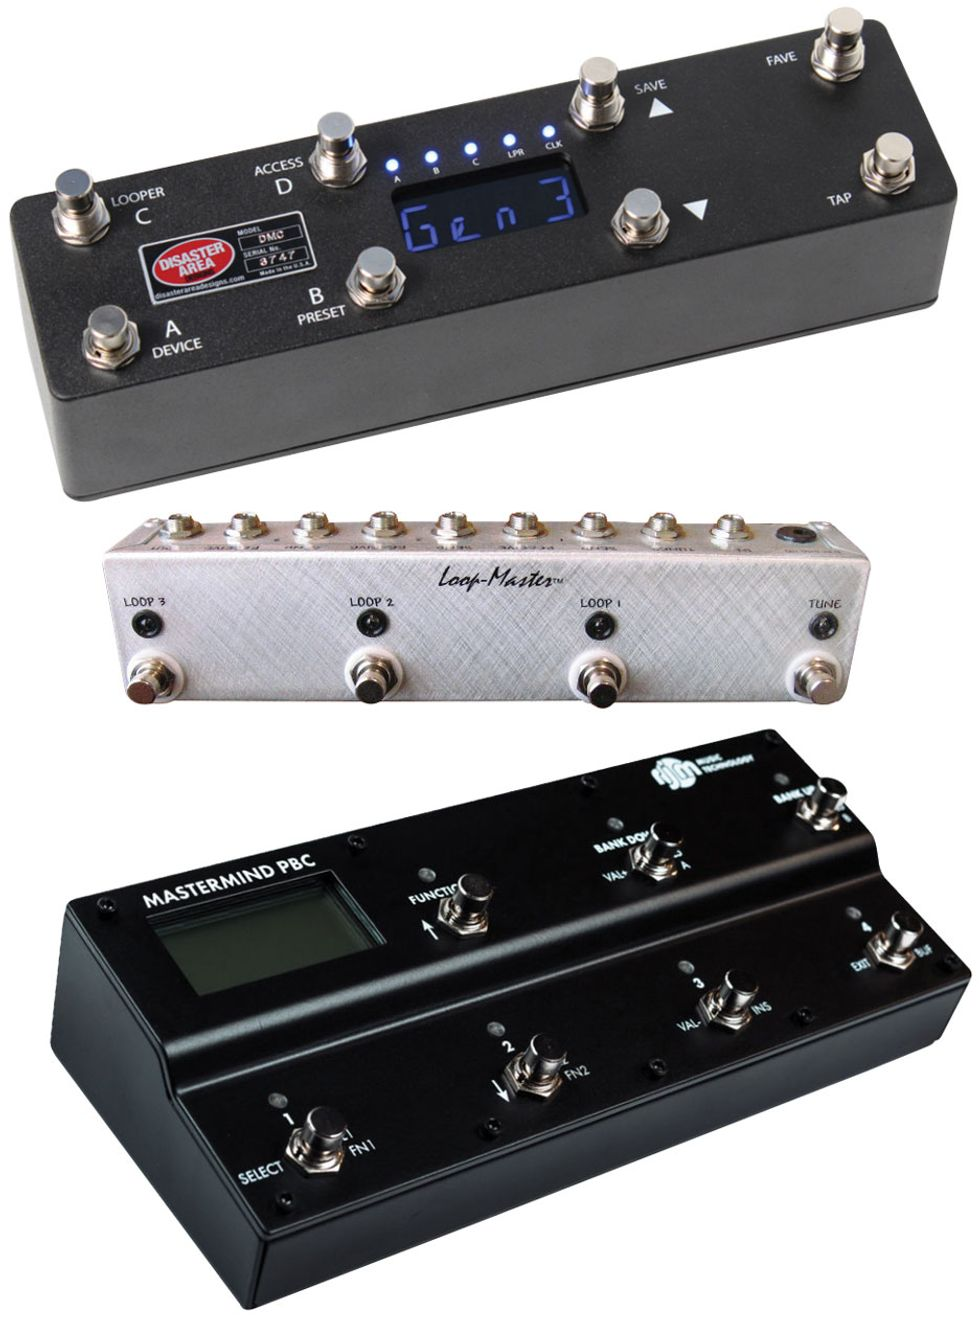 State of the Stomp: Do I Need a Loop Switcher on My Pedalboard?